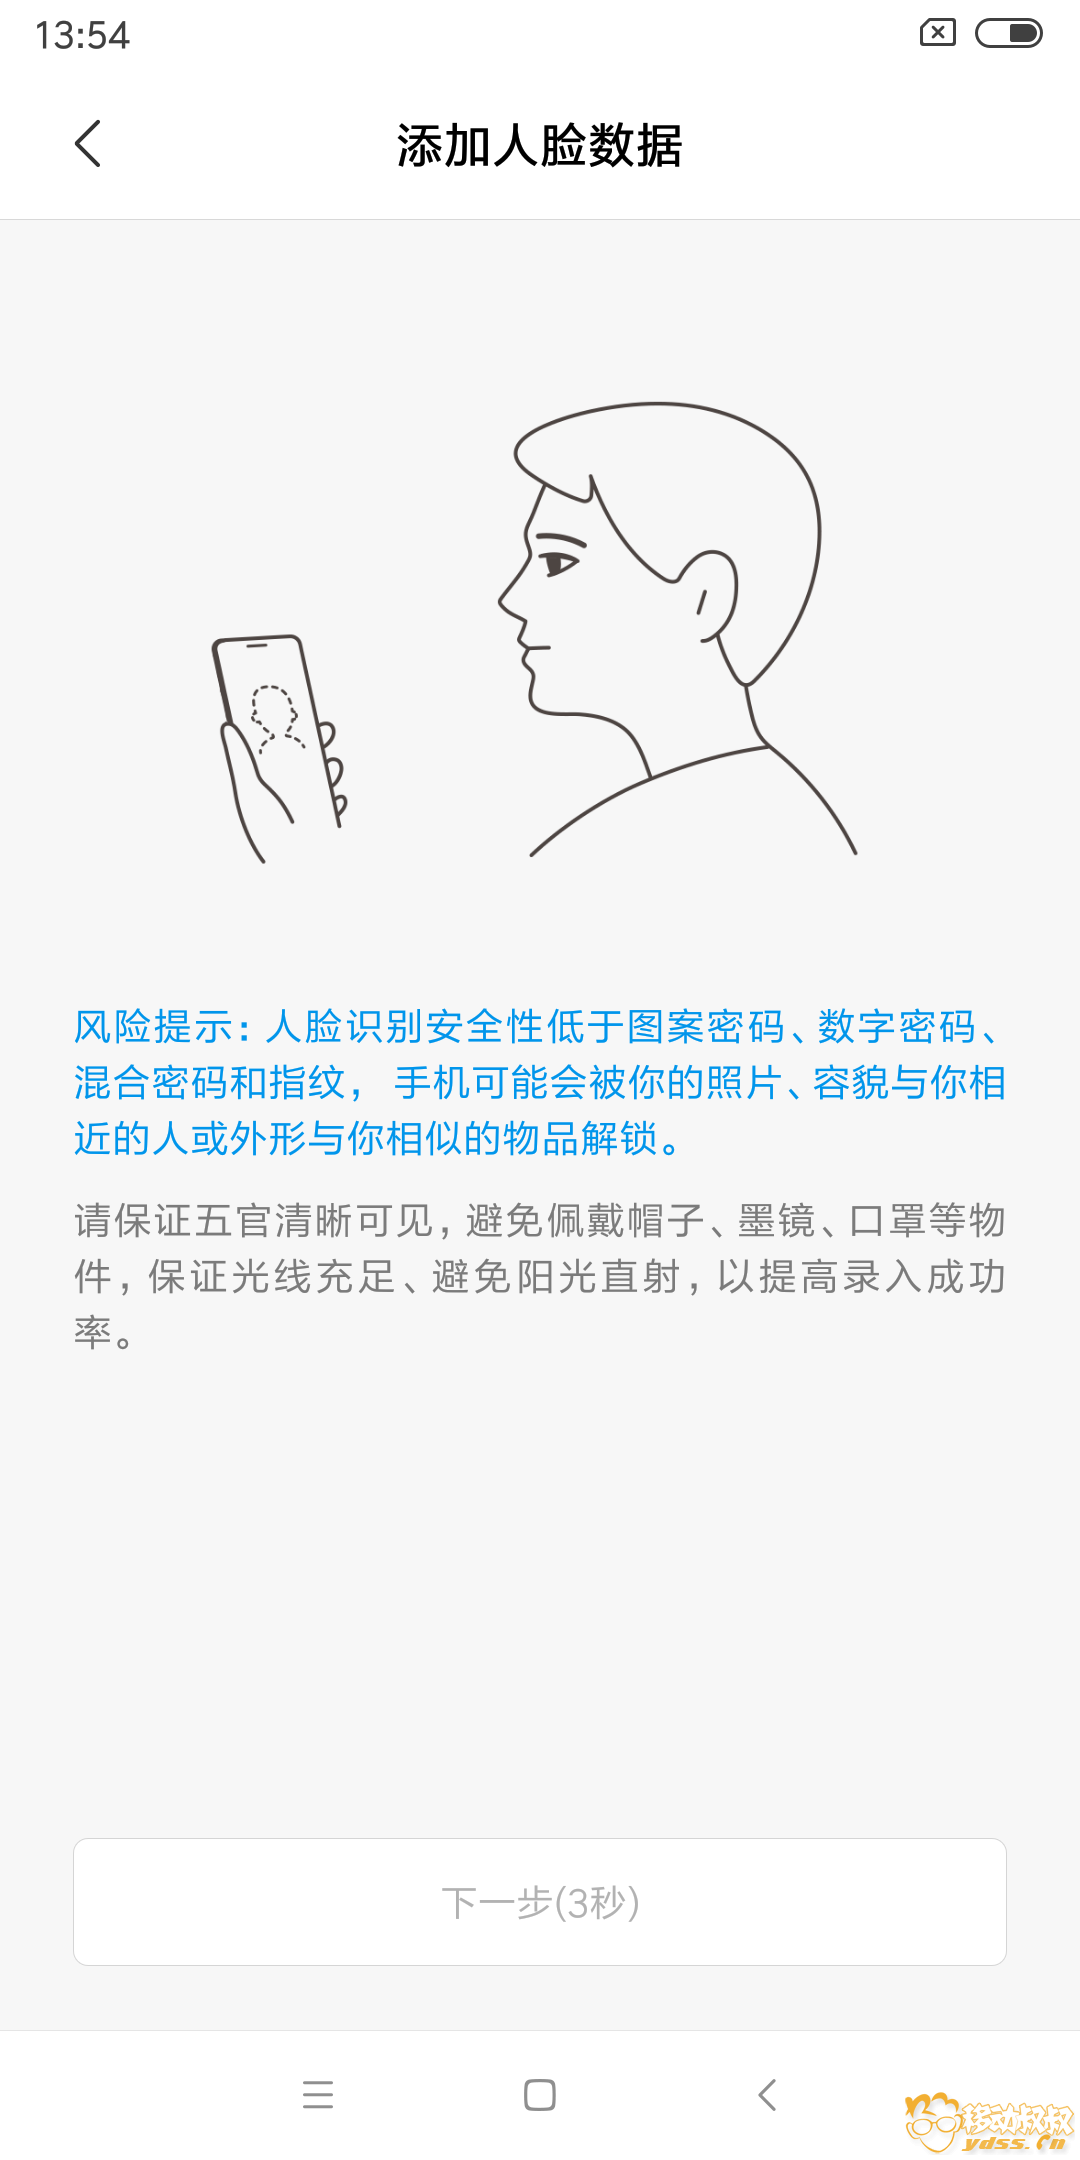 Screenshot_2018-07-09-13-54-58-127_com.android.systemui.png